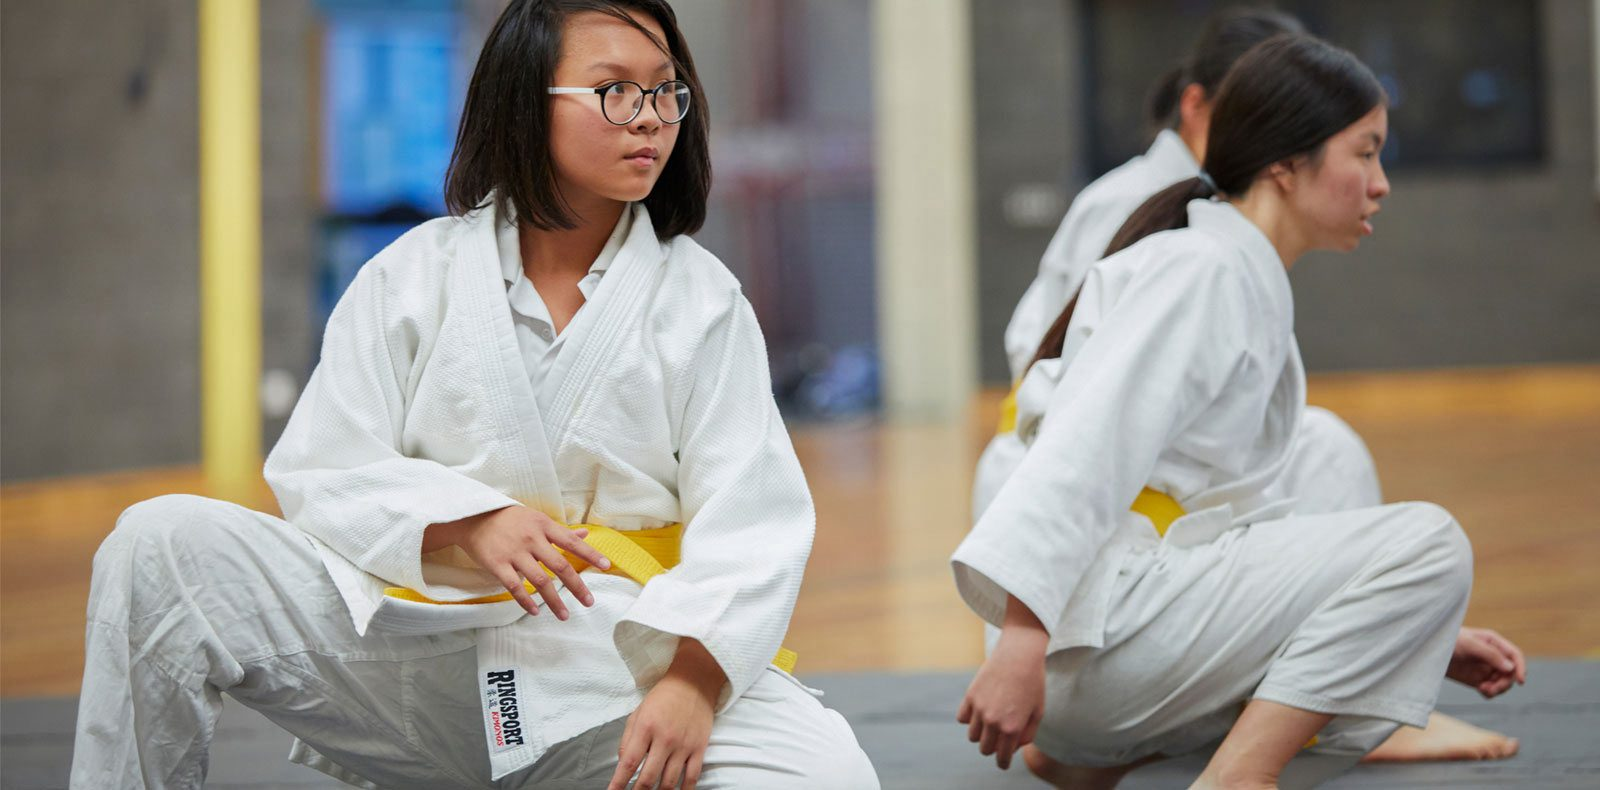 Female student practicing a move in martial arts uniform